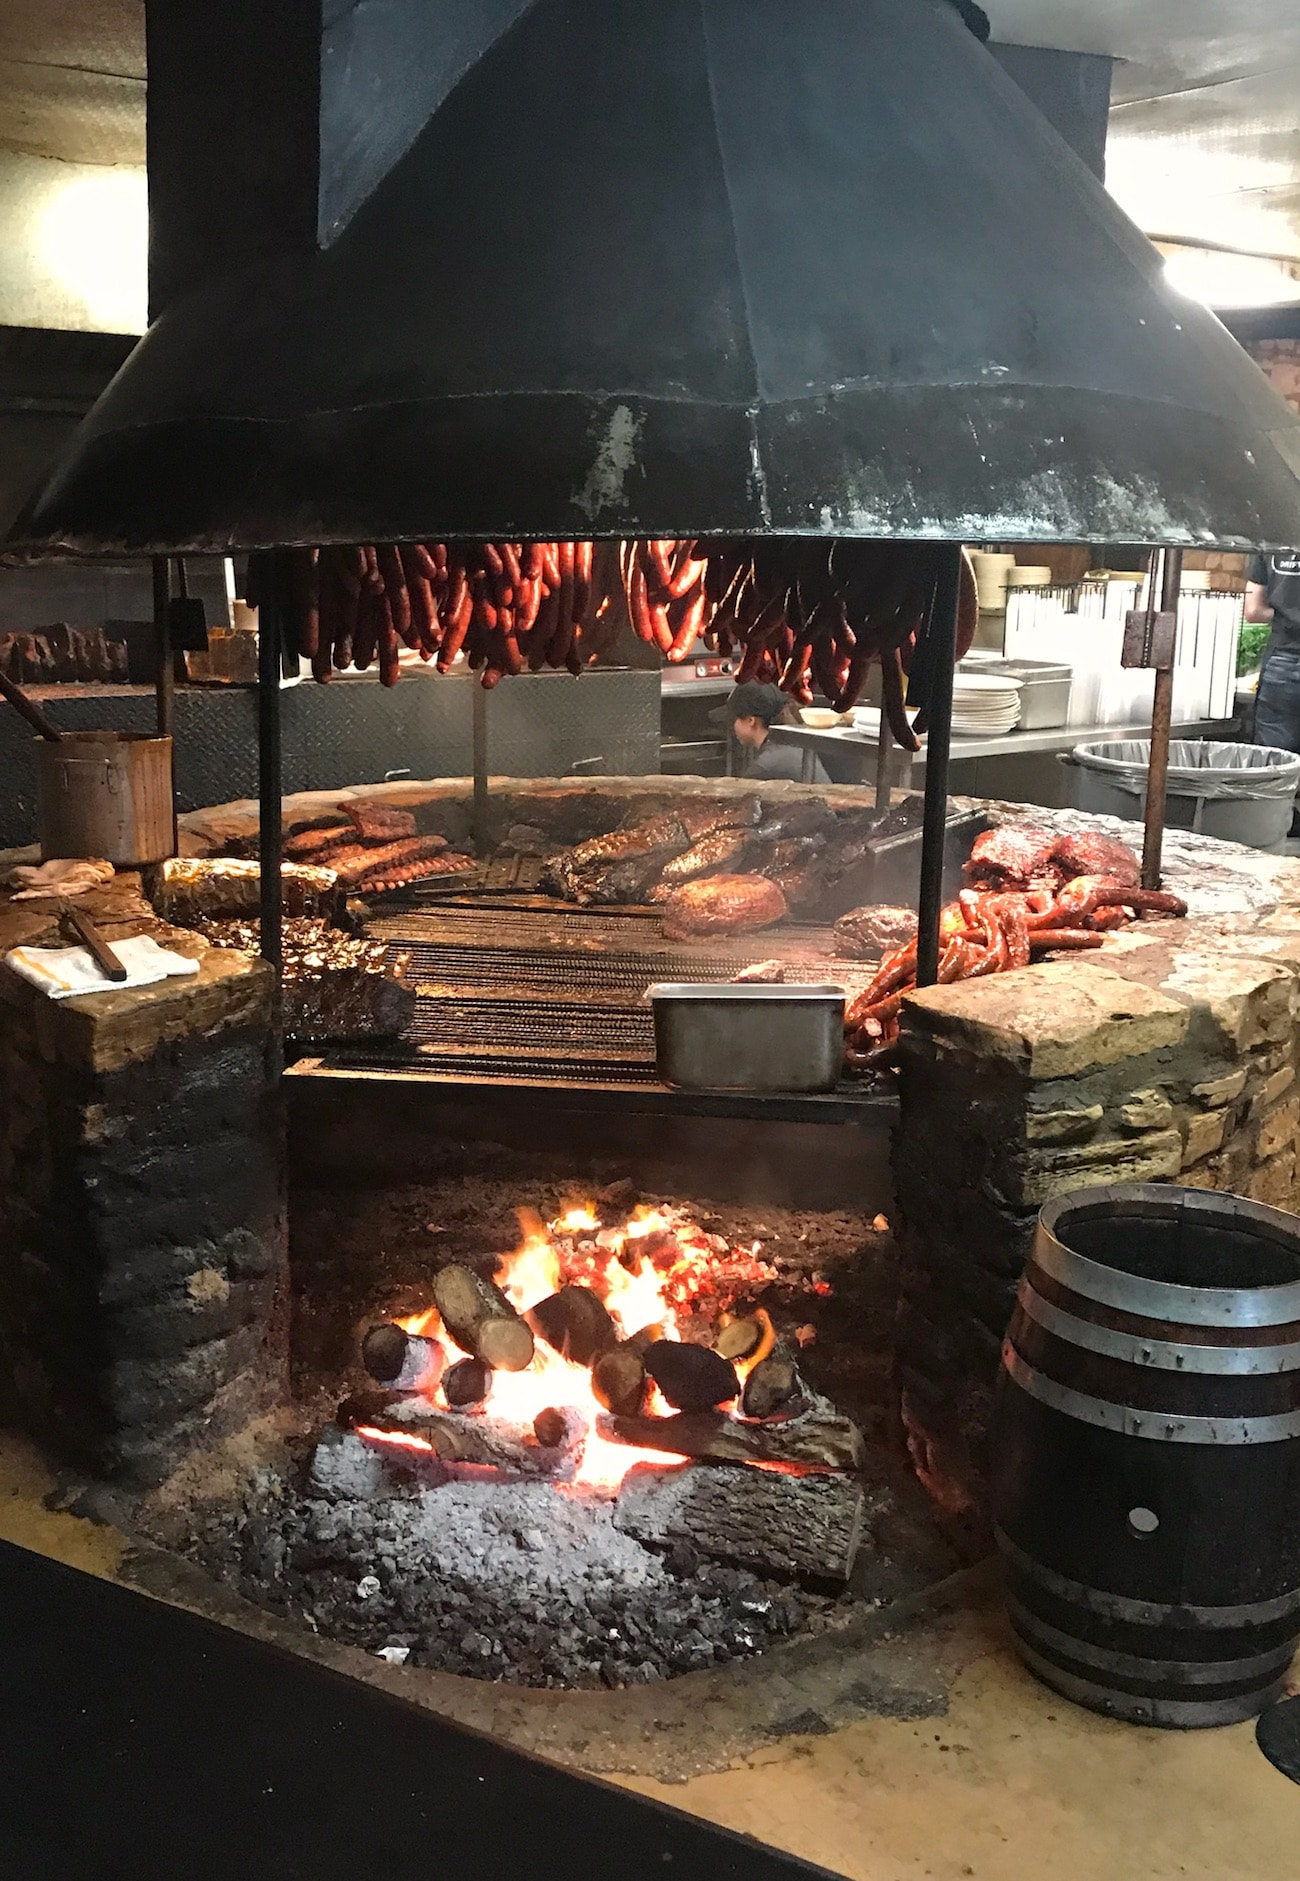 Traveling to Austin, Texas? Or maybe you already live here and are looking for something fun and fresh to do? If you're on the lookout for day trip ideas,I found some fun things to do in Austin (even as a local)! Whether you're traveling solo or visiting with a group, there's something for you! I booked this Salt Lick BBQ/Winery Shuttle via TripAdvisor. So much Texas barbecue and wine -- such a memorable day with family and friends!